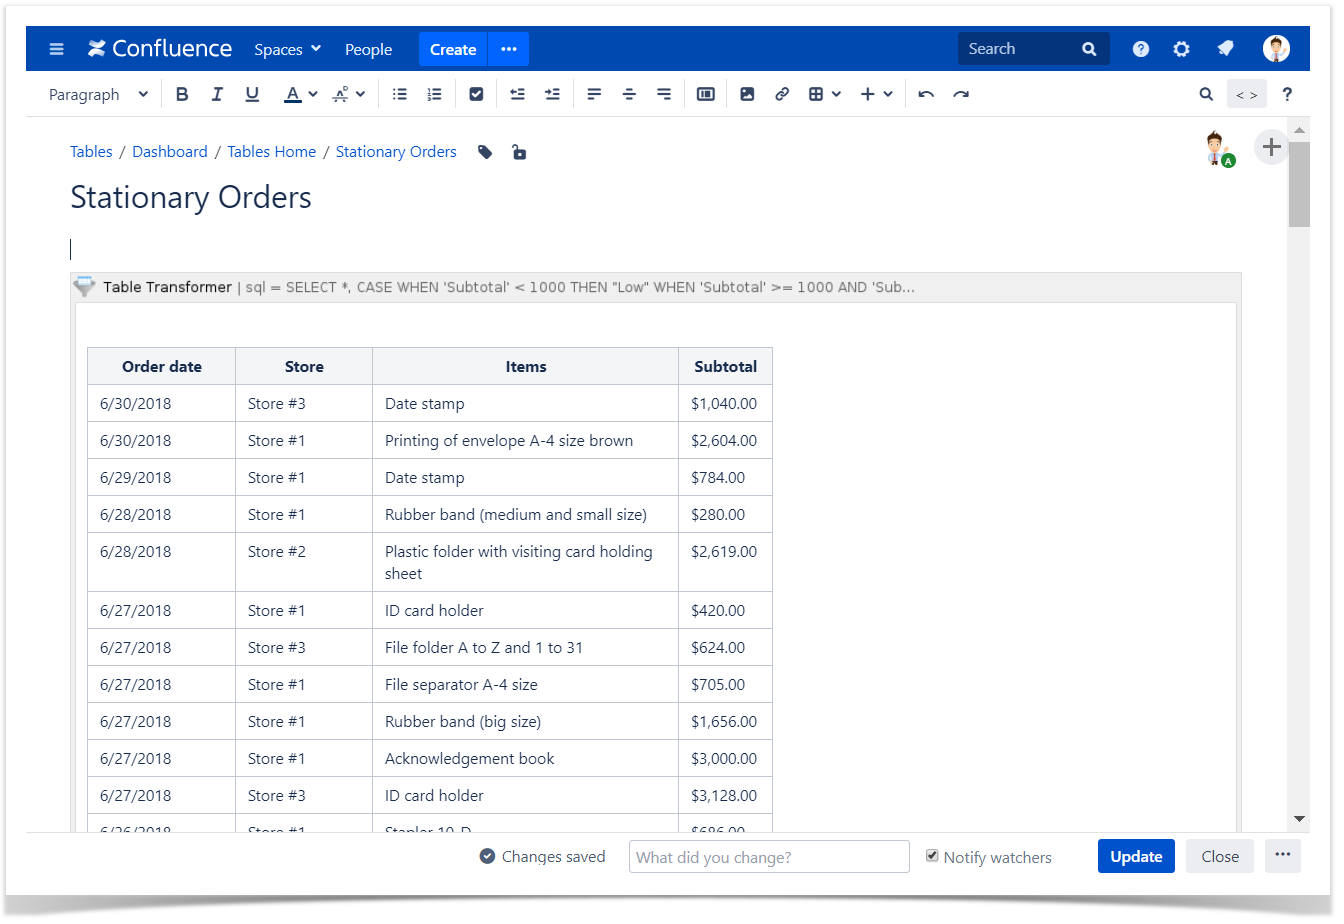 Custom Transformation - use cases with advanced SQL queries